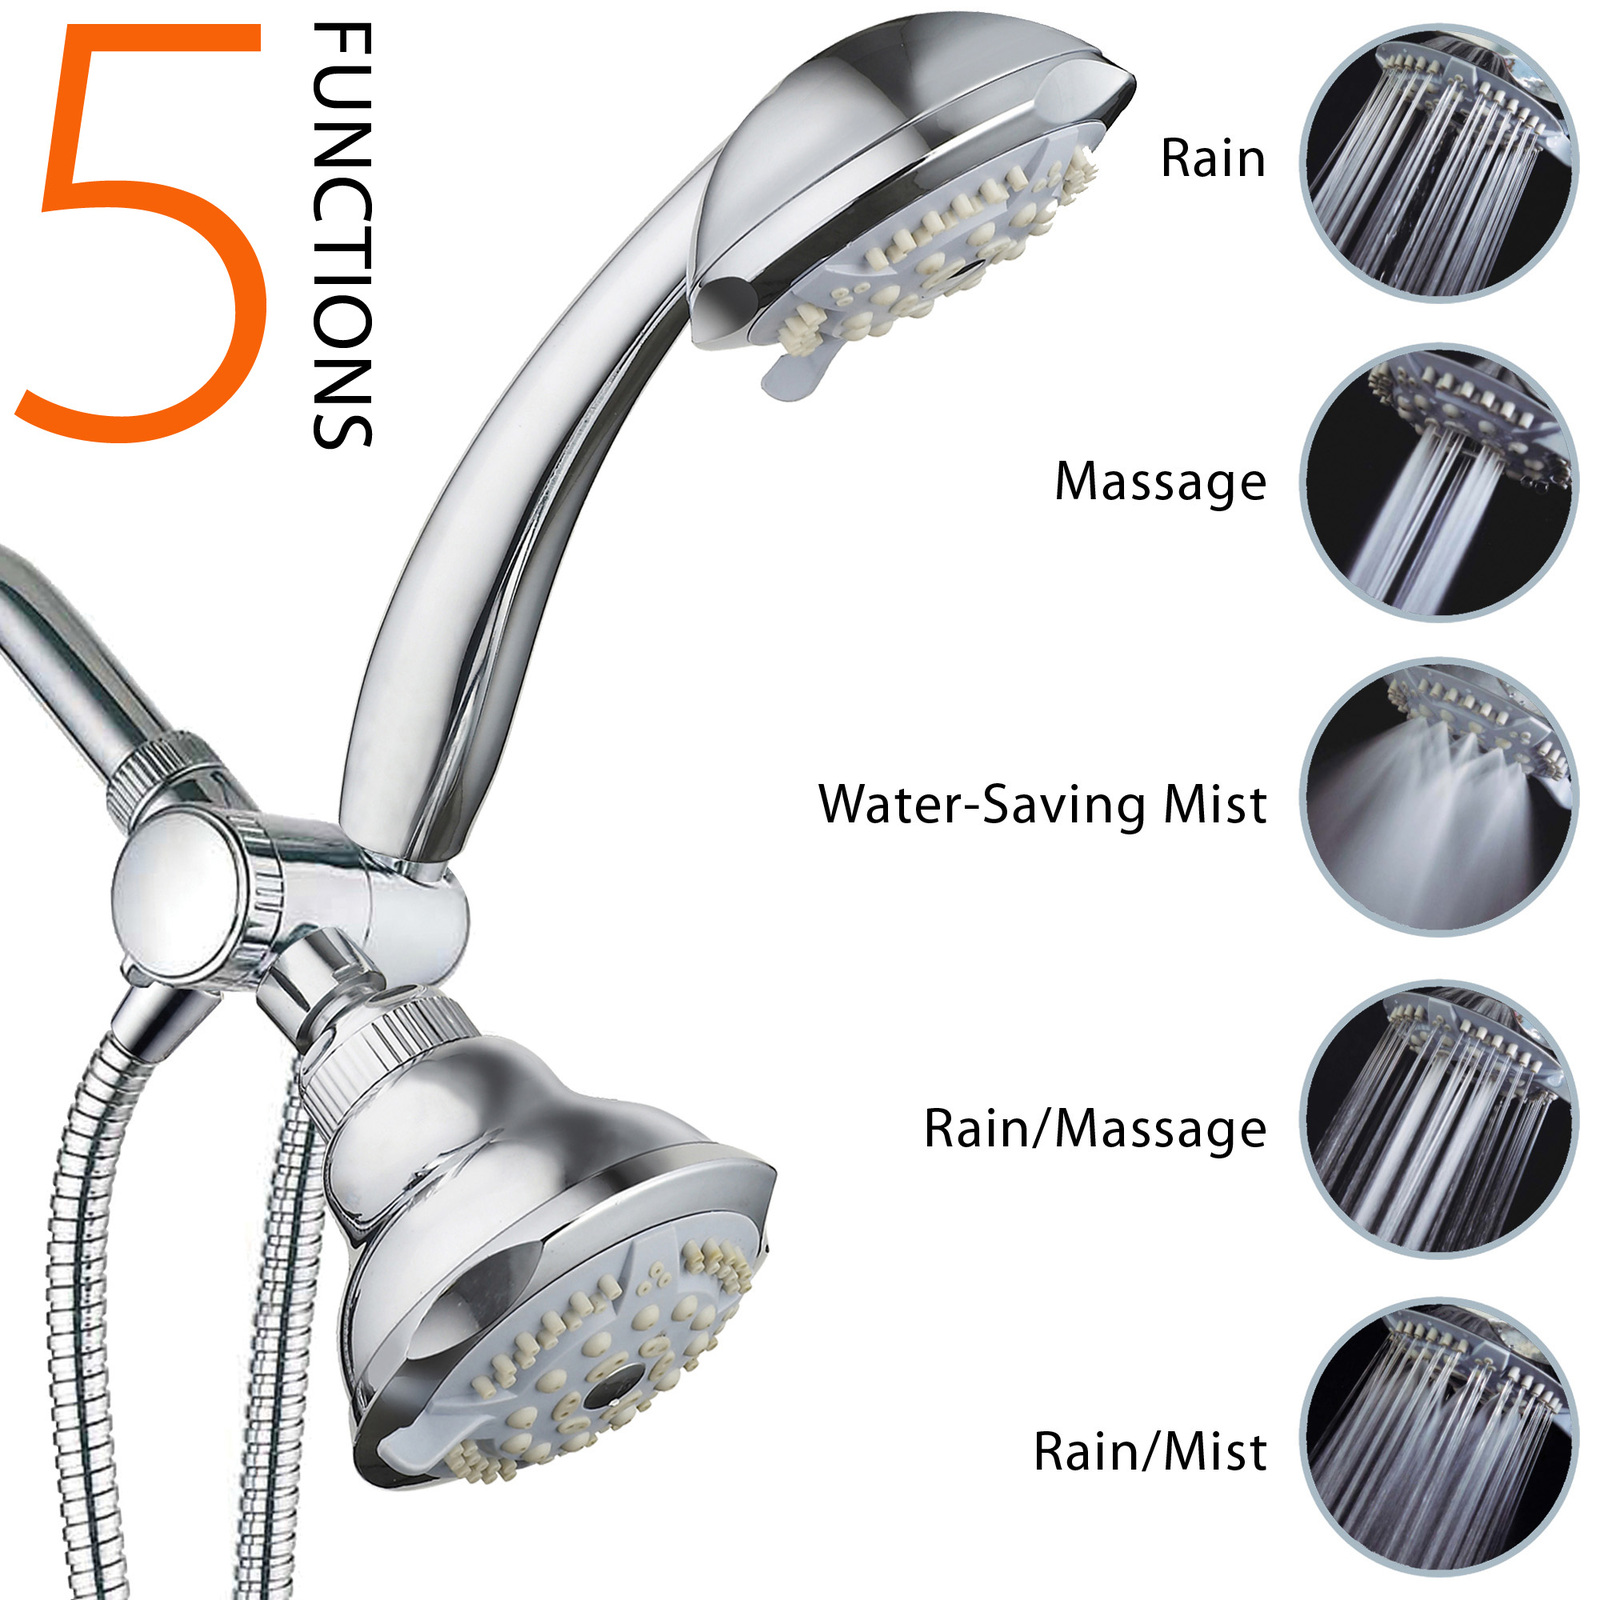 Primary image for DreamSpa Luxary 19-Setting 3-Way Oversize 4-inch Shower Head / Hand Shower Combo